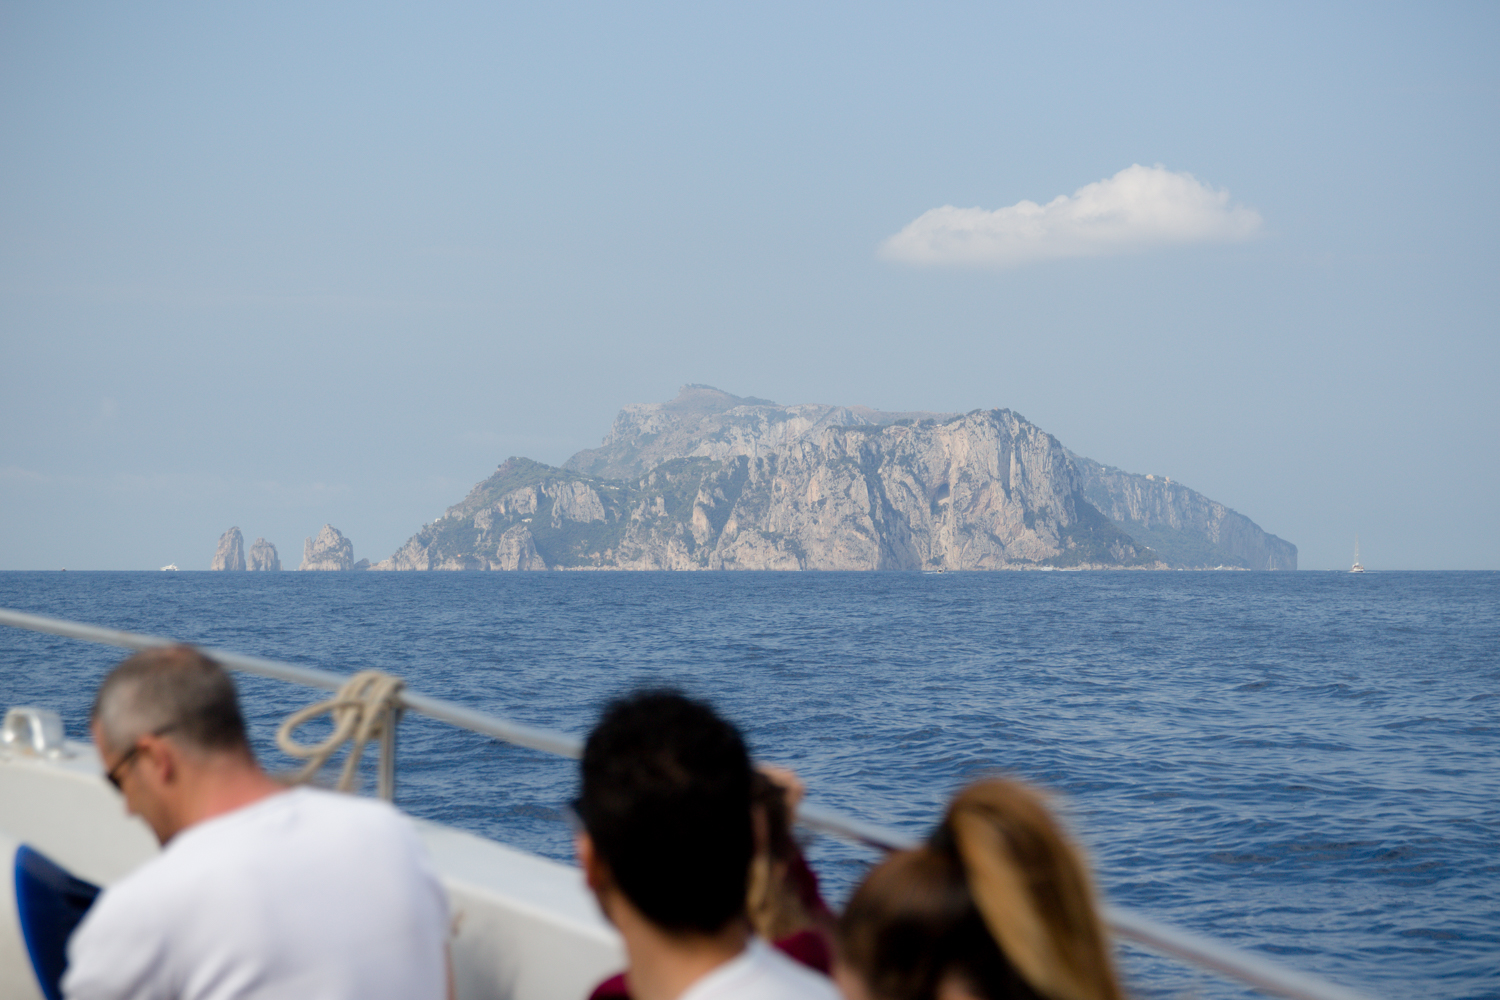 That's Capri in the distance!